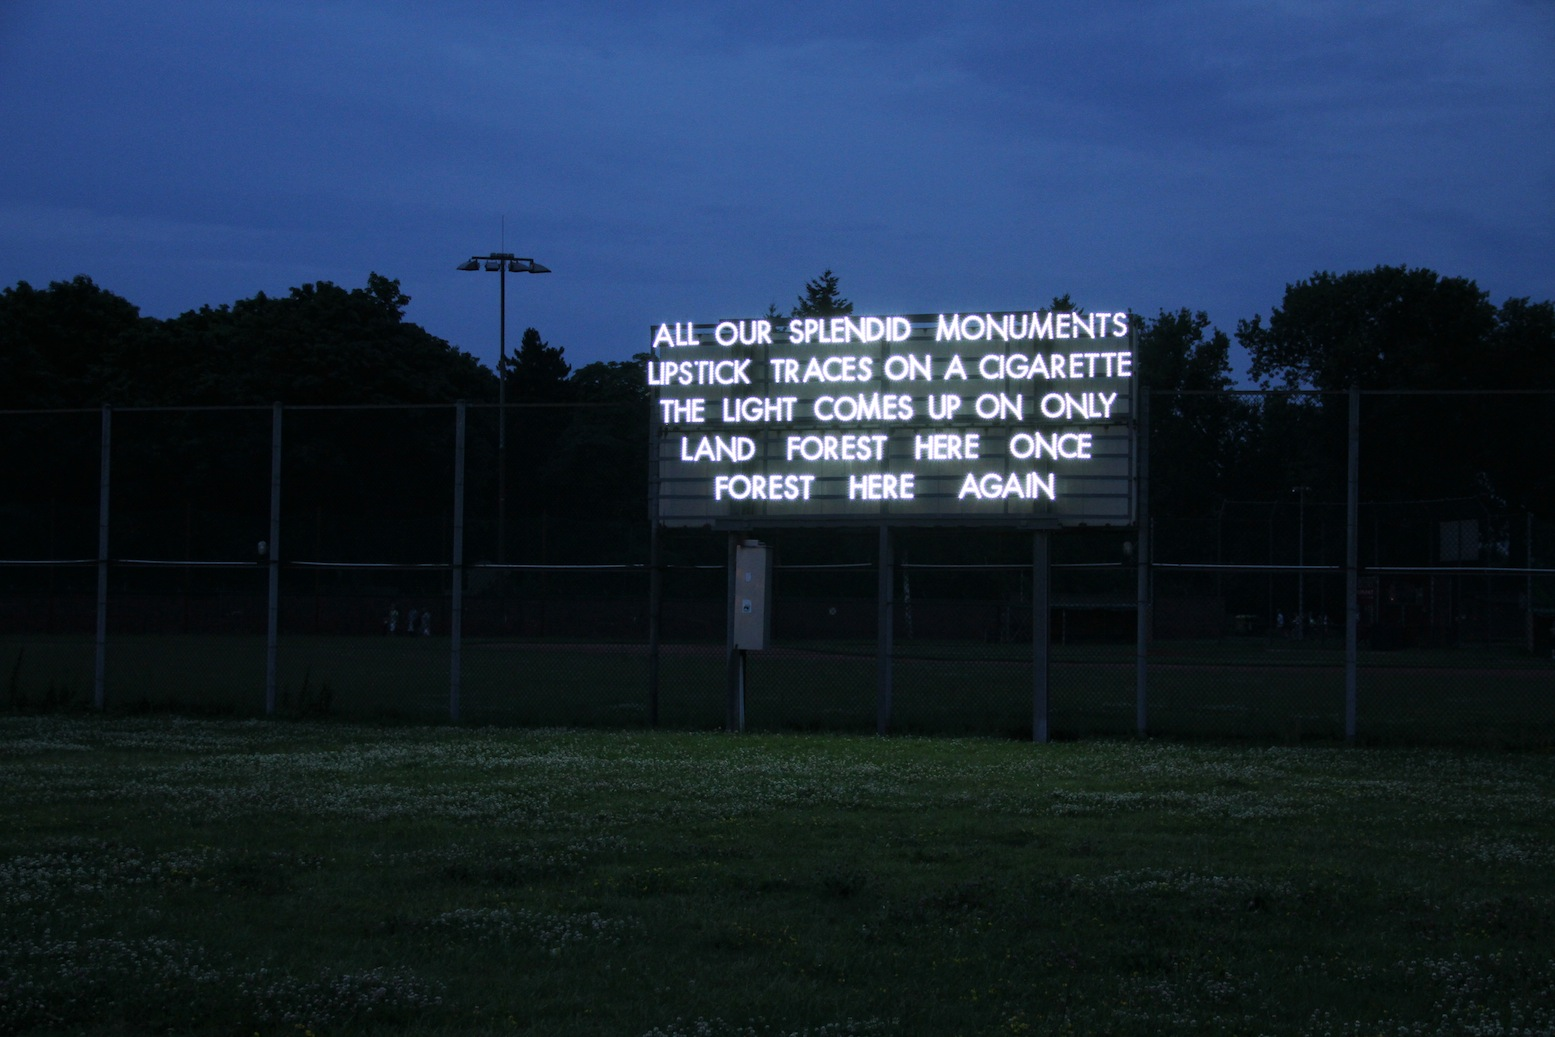 Robert Montgomery - All our splendid monuments, 2012, Berlin, Germany